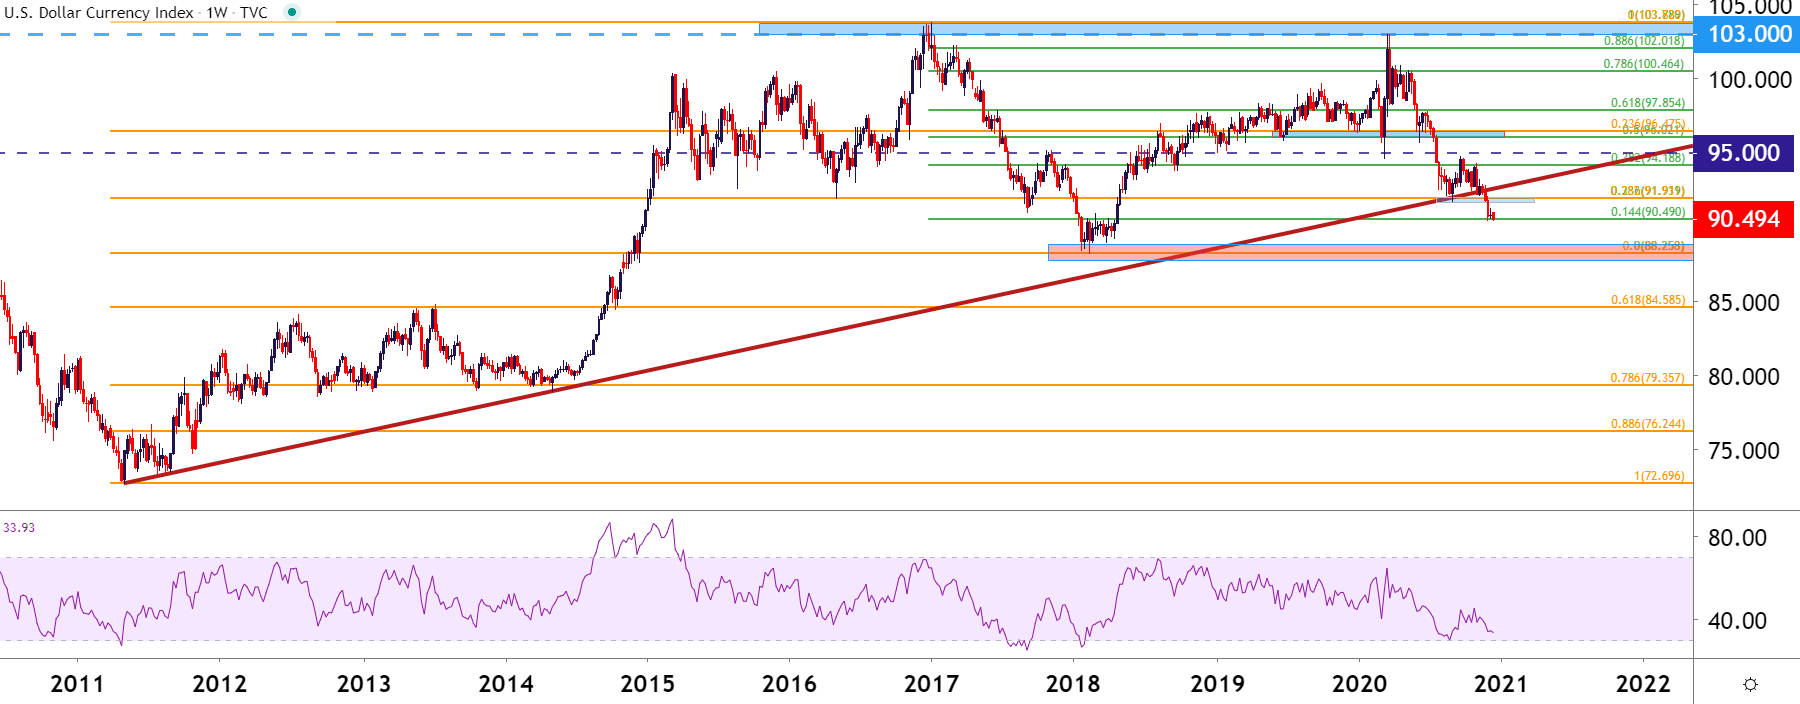 Us Dollar Price Action Into 2021: Eur/Usd, Usd/Jpy in Rut Forecast 2021